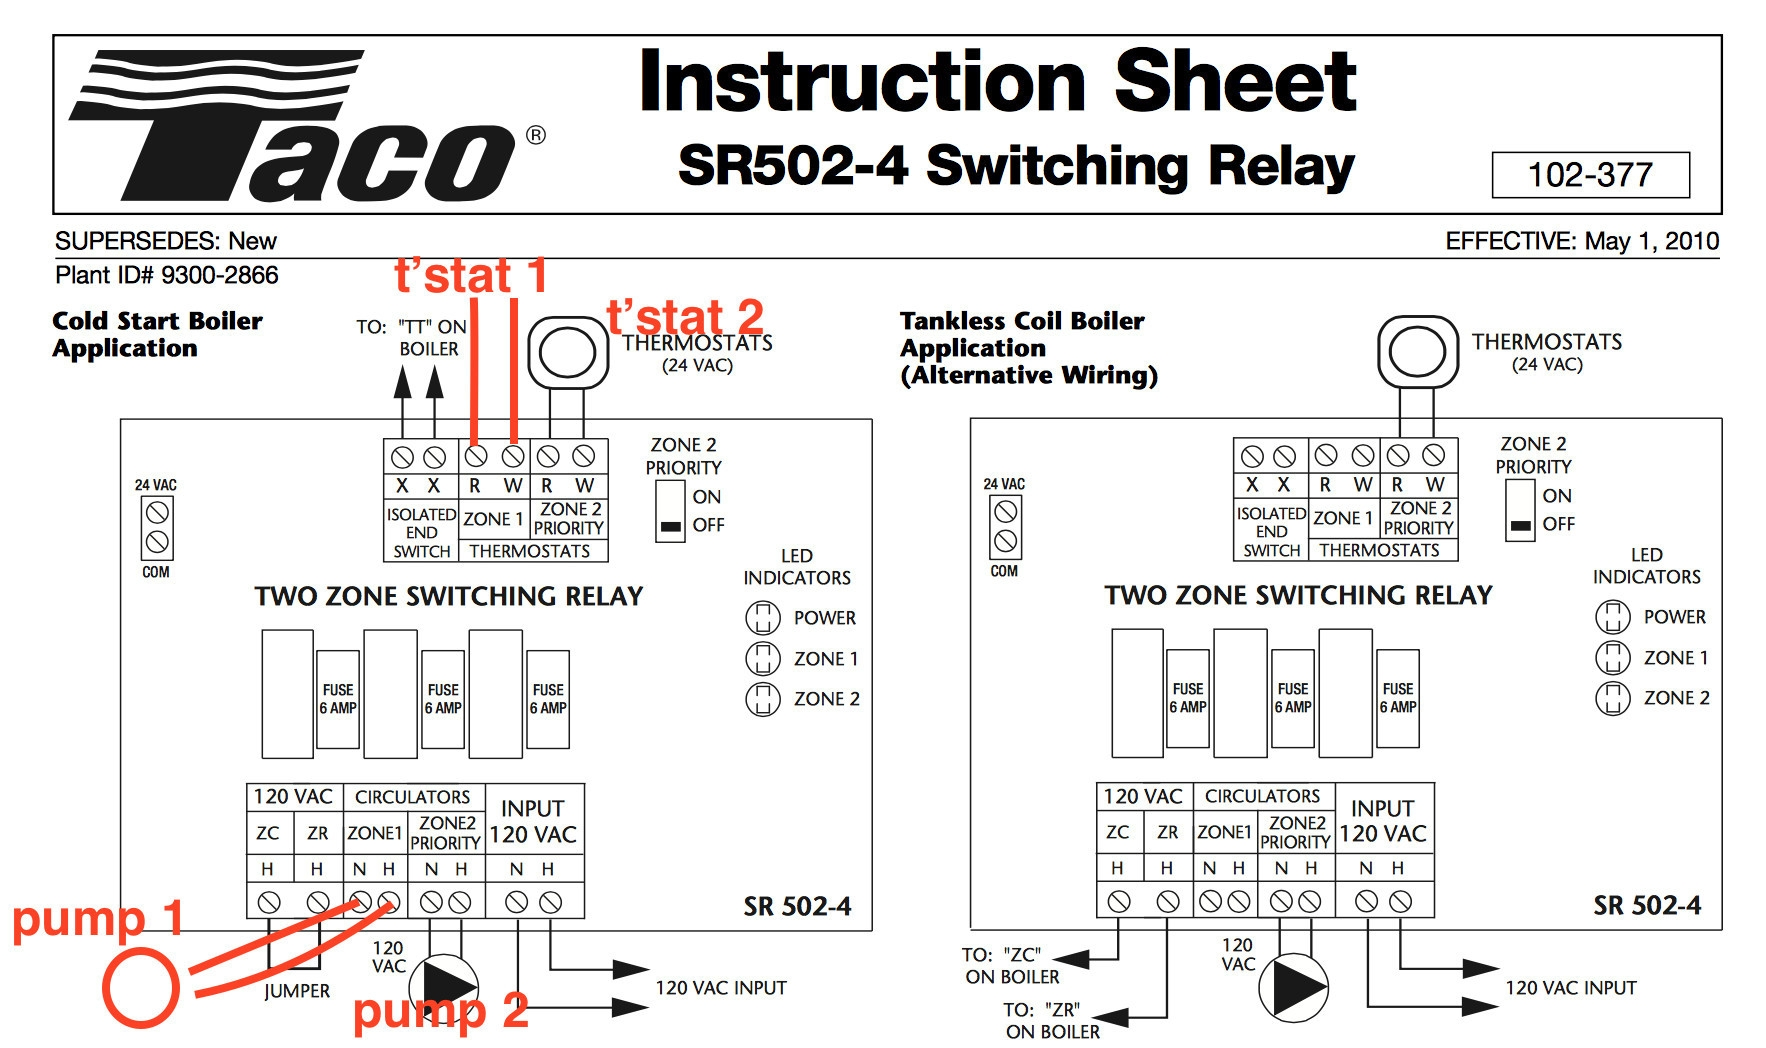 hight resolution of taco wiring diagram 504 wiring diagram view taco wiring diagram 504